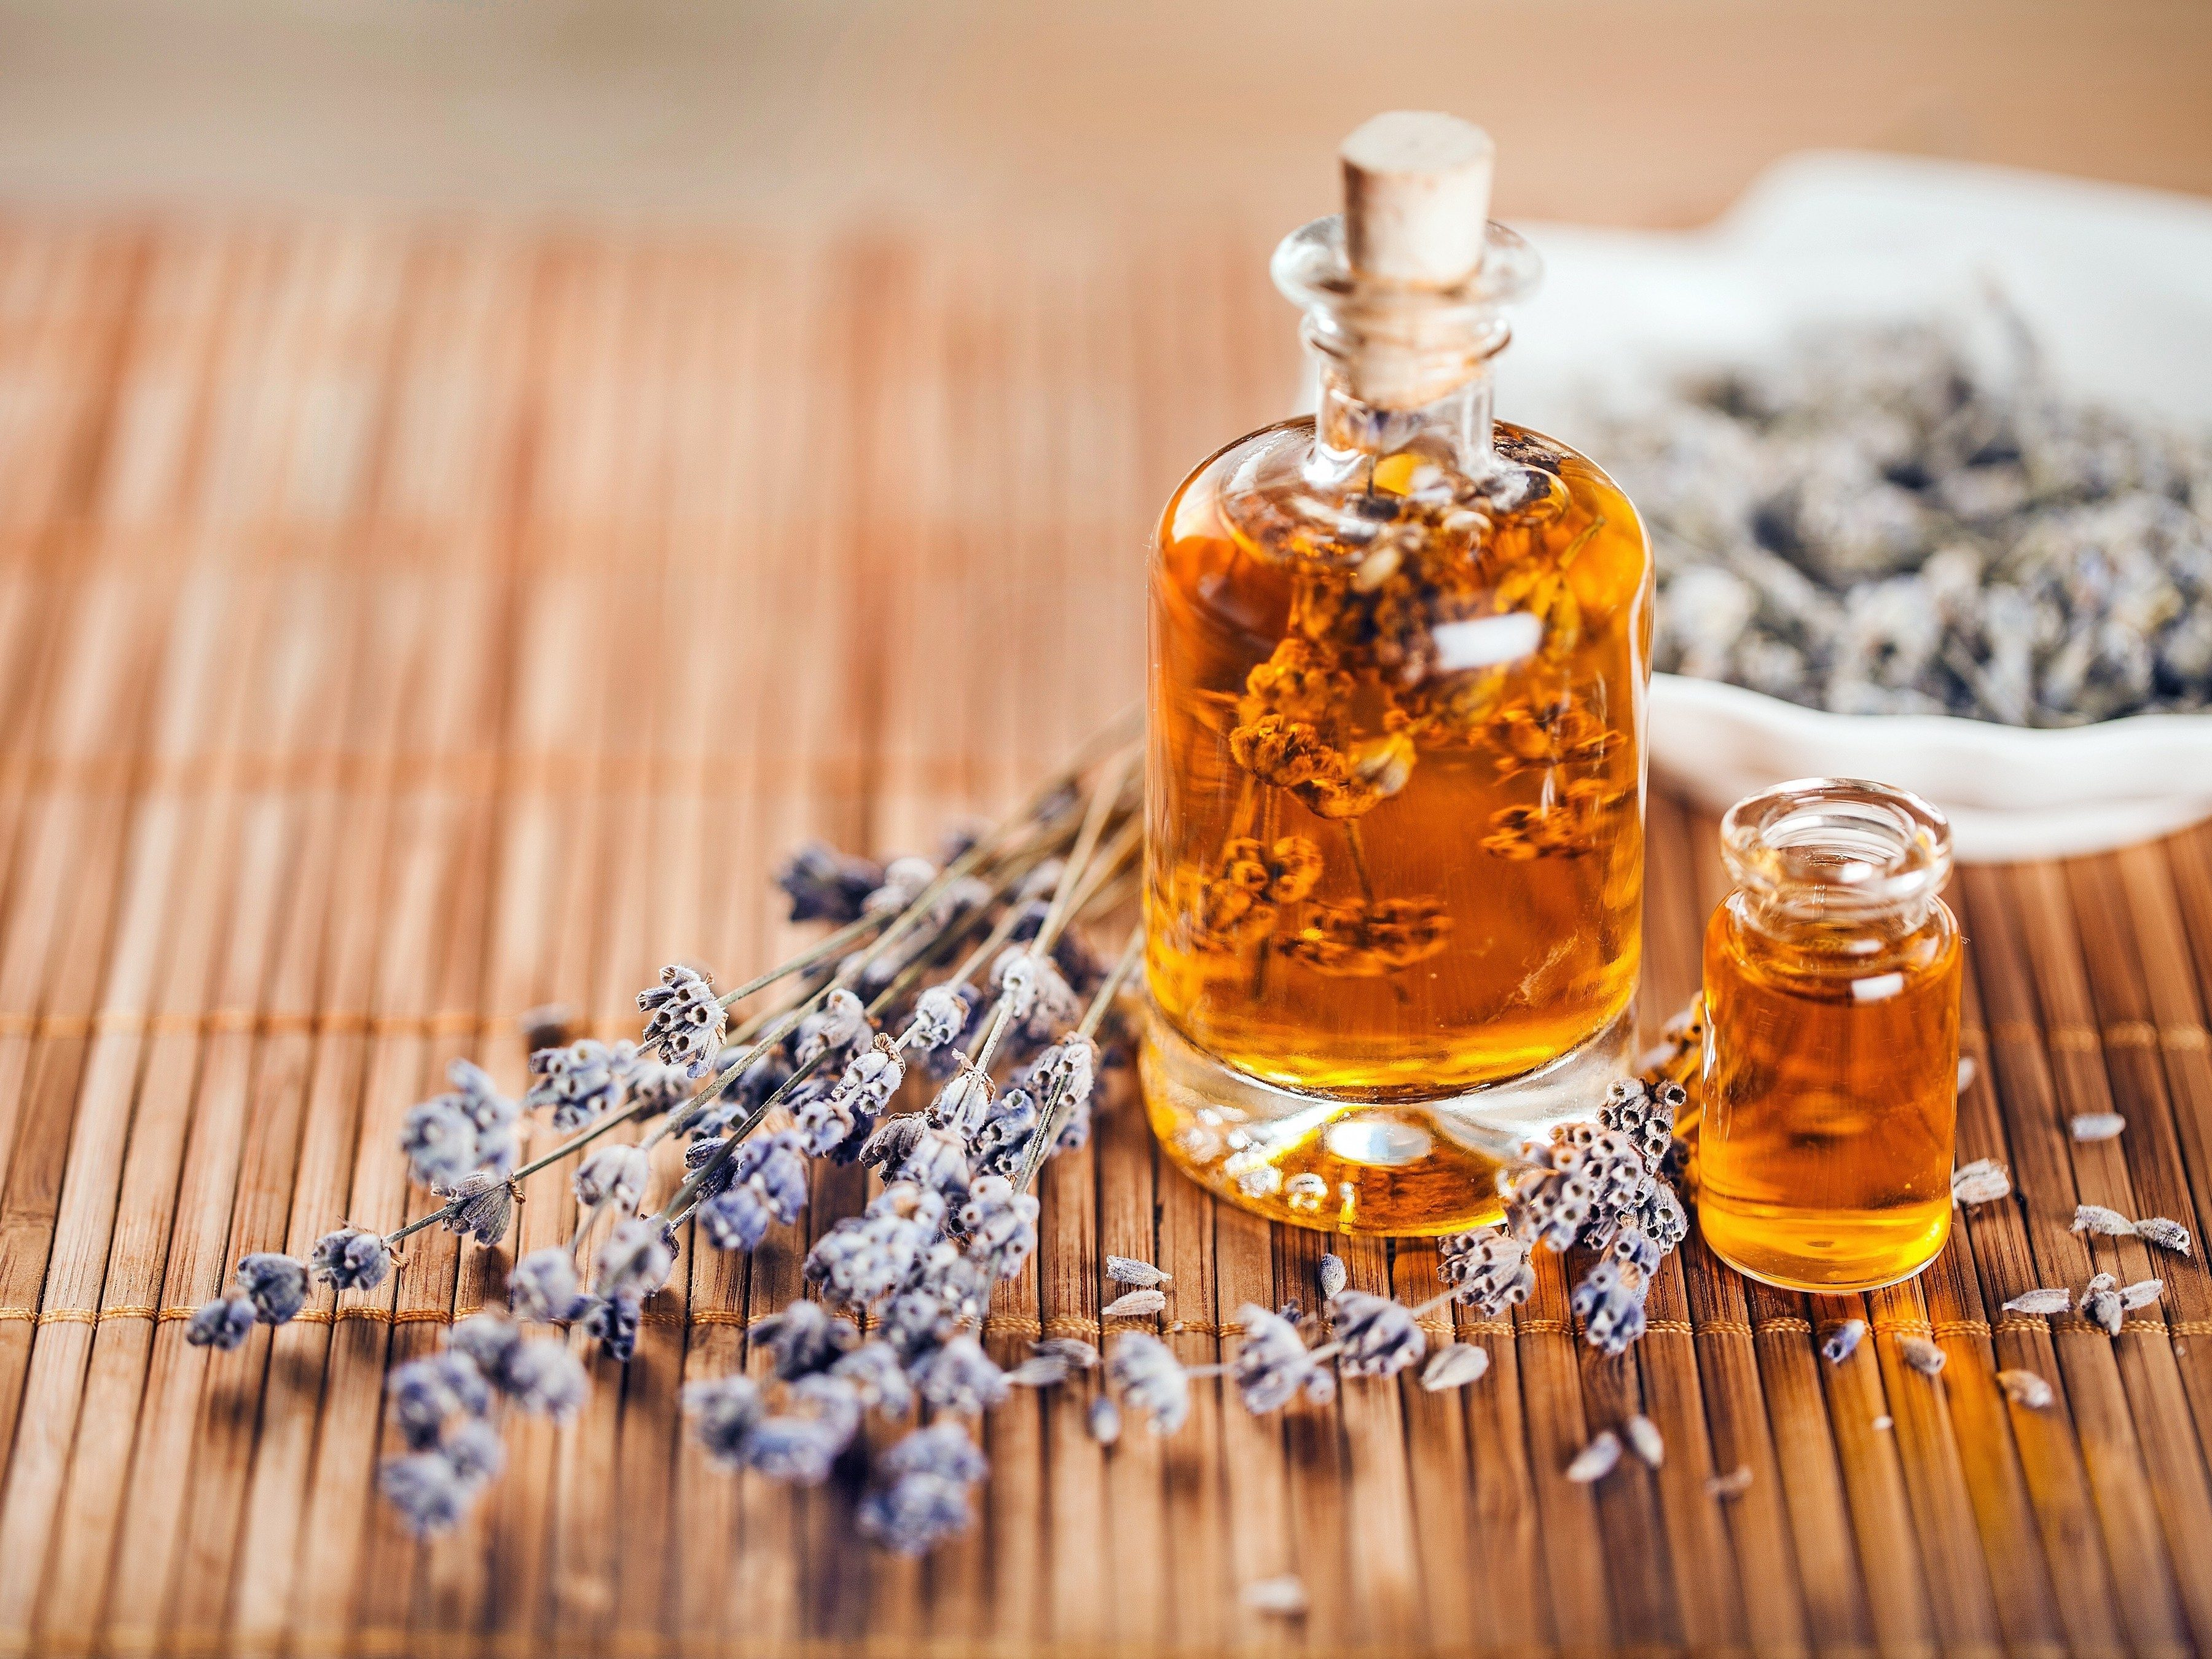 2. What You Should Know About Aromatherapy